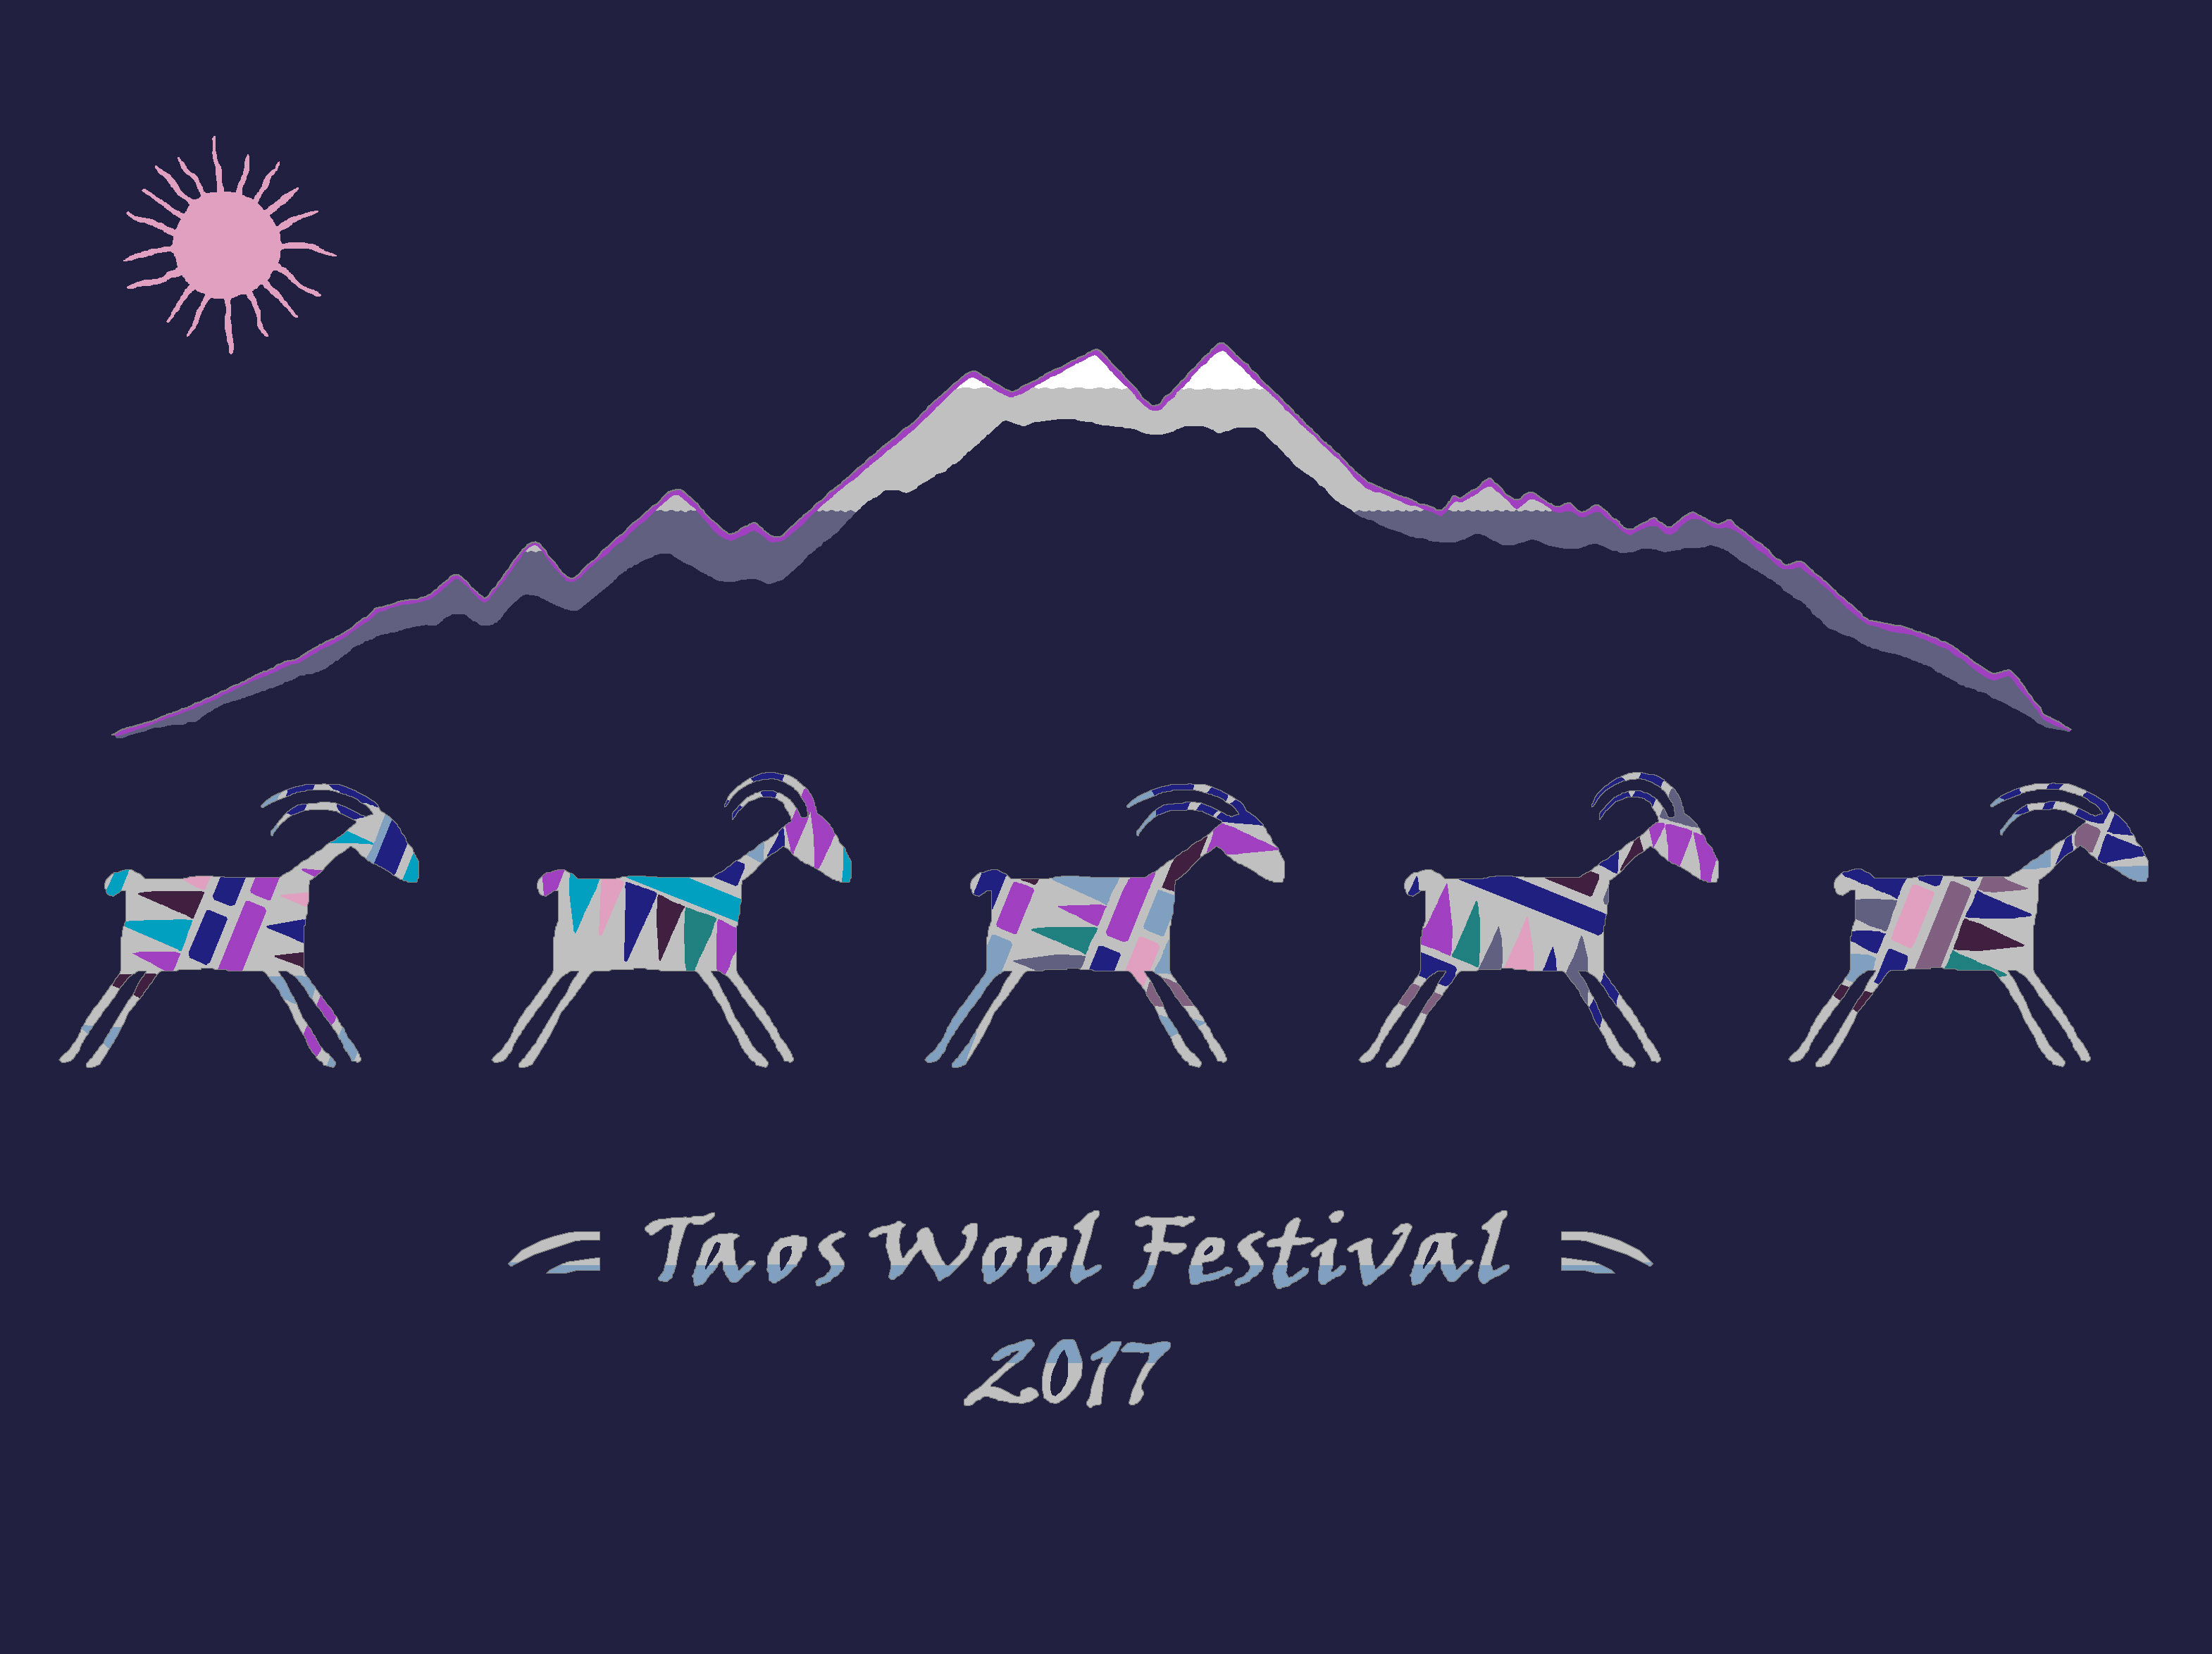 2017 Taos Wool Festival T-Shirt Artwork Winner